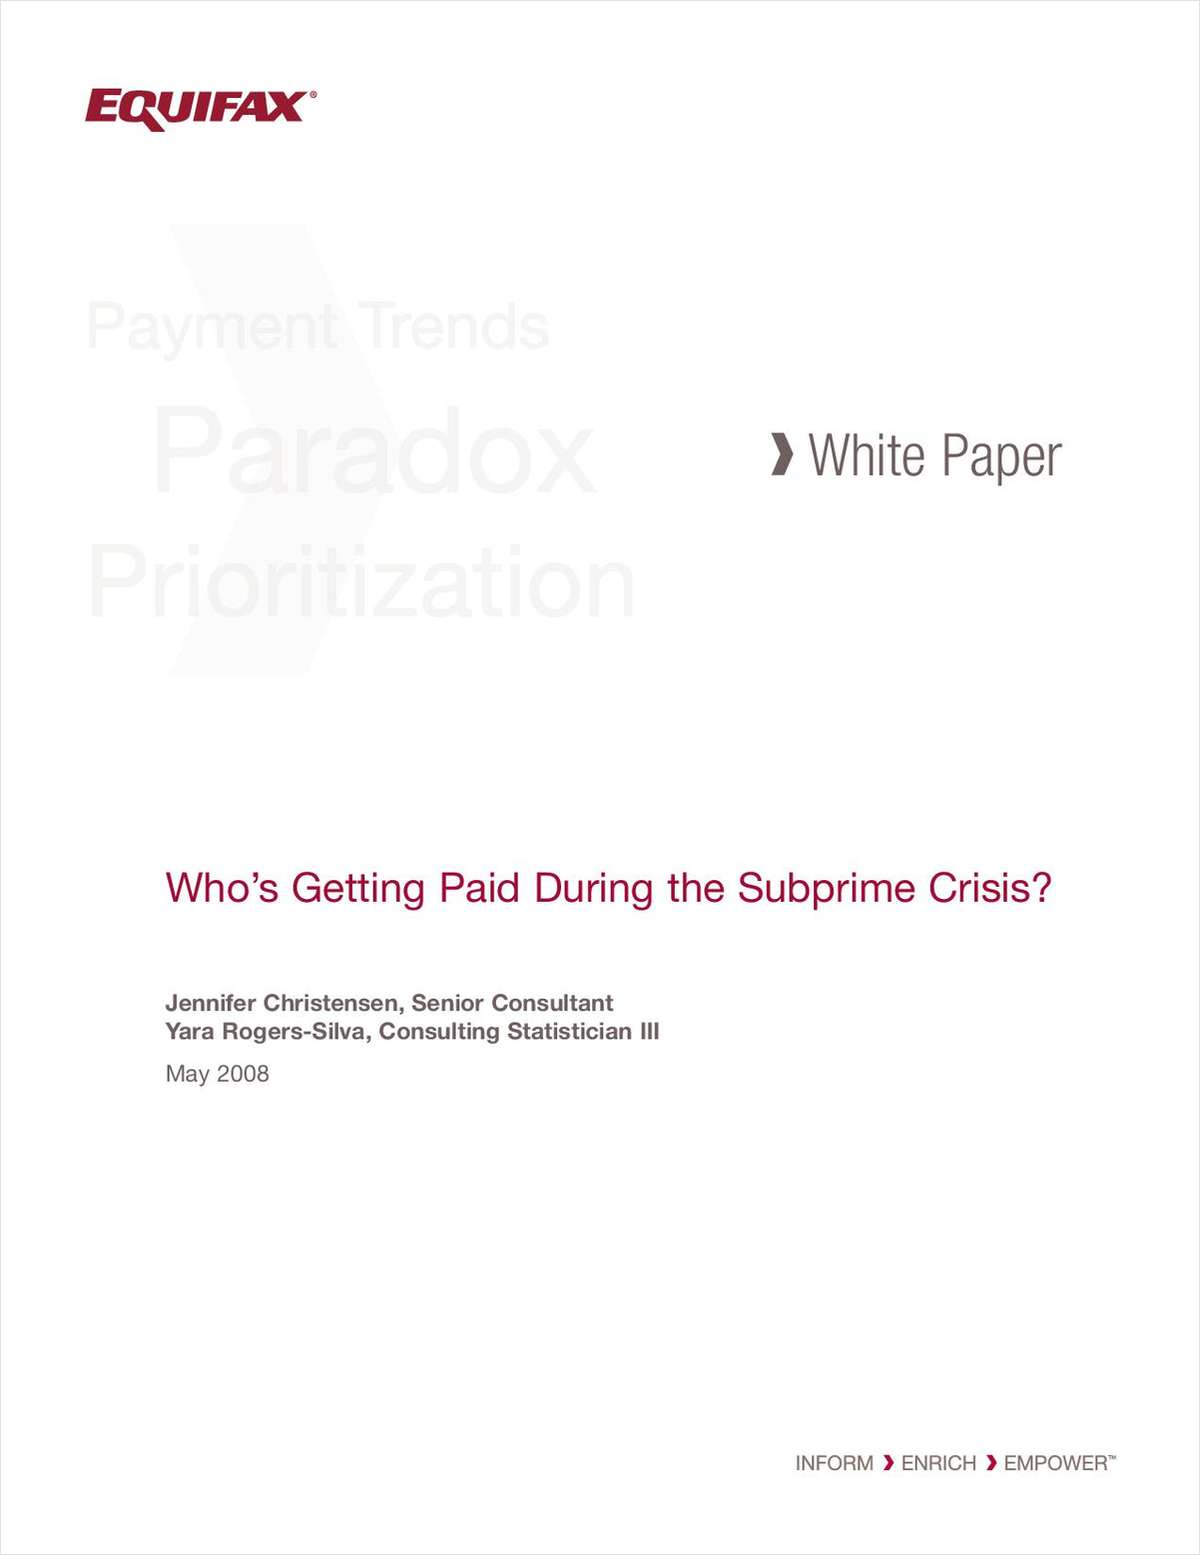 Who's Getting Paid During the Subprime Crisis?